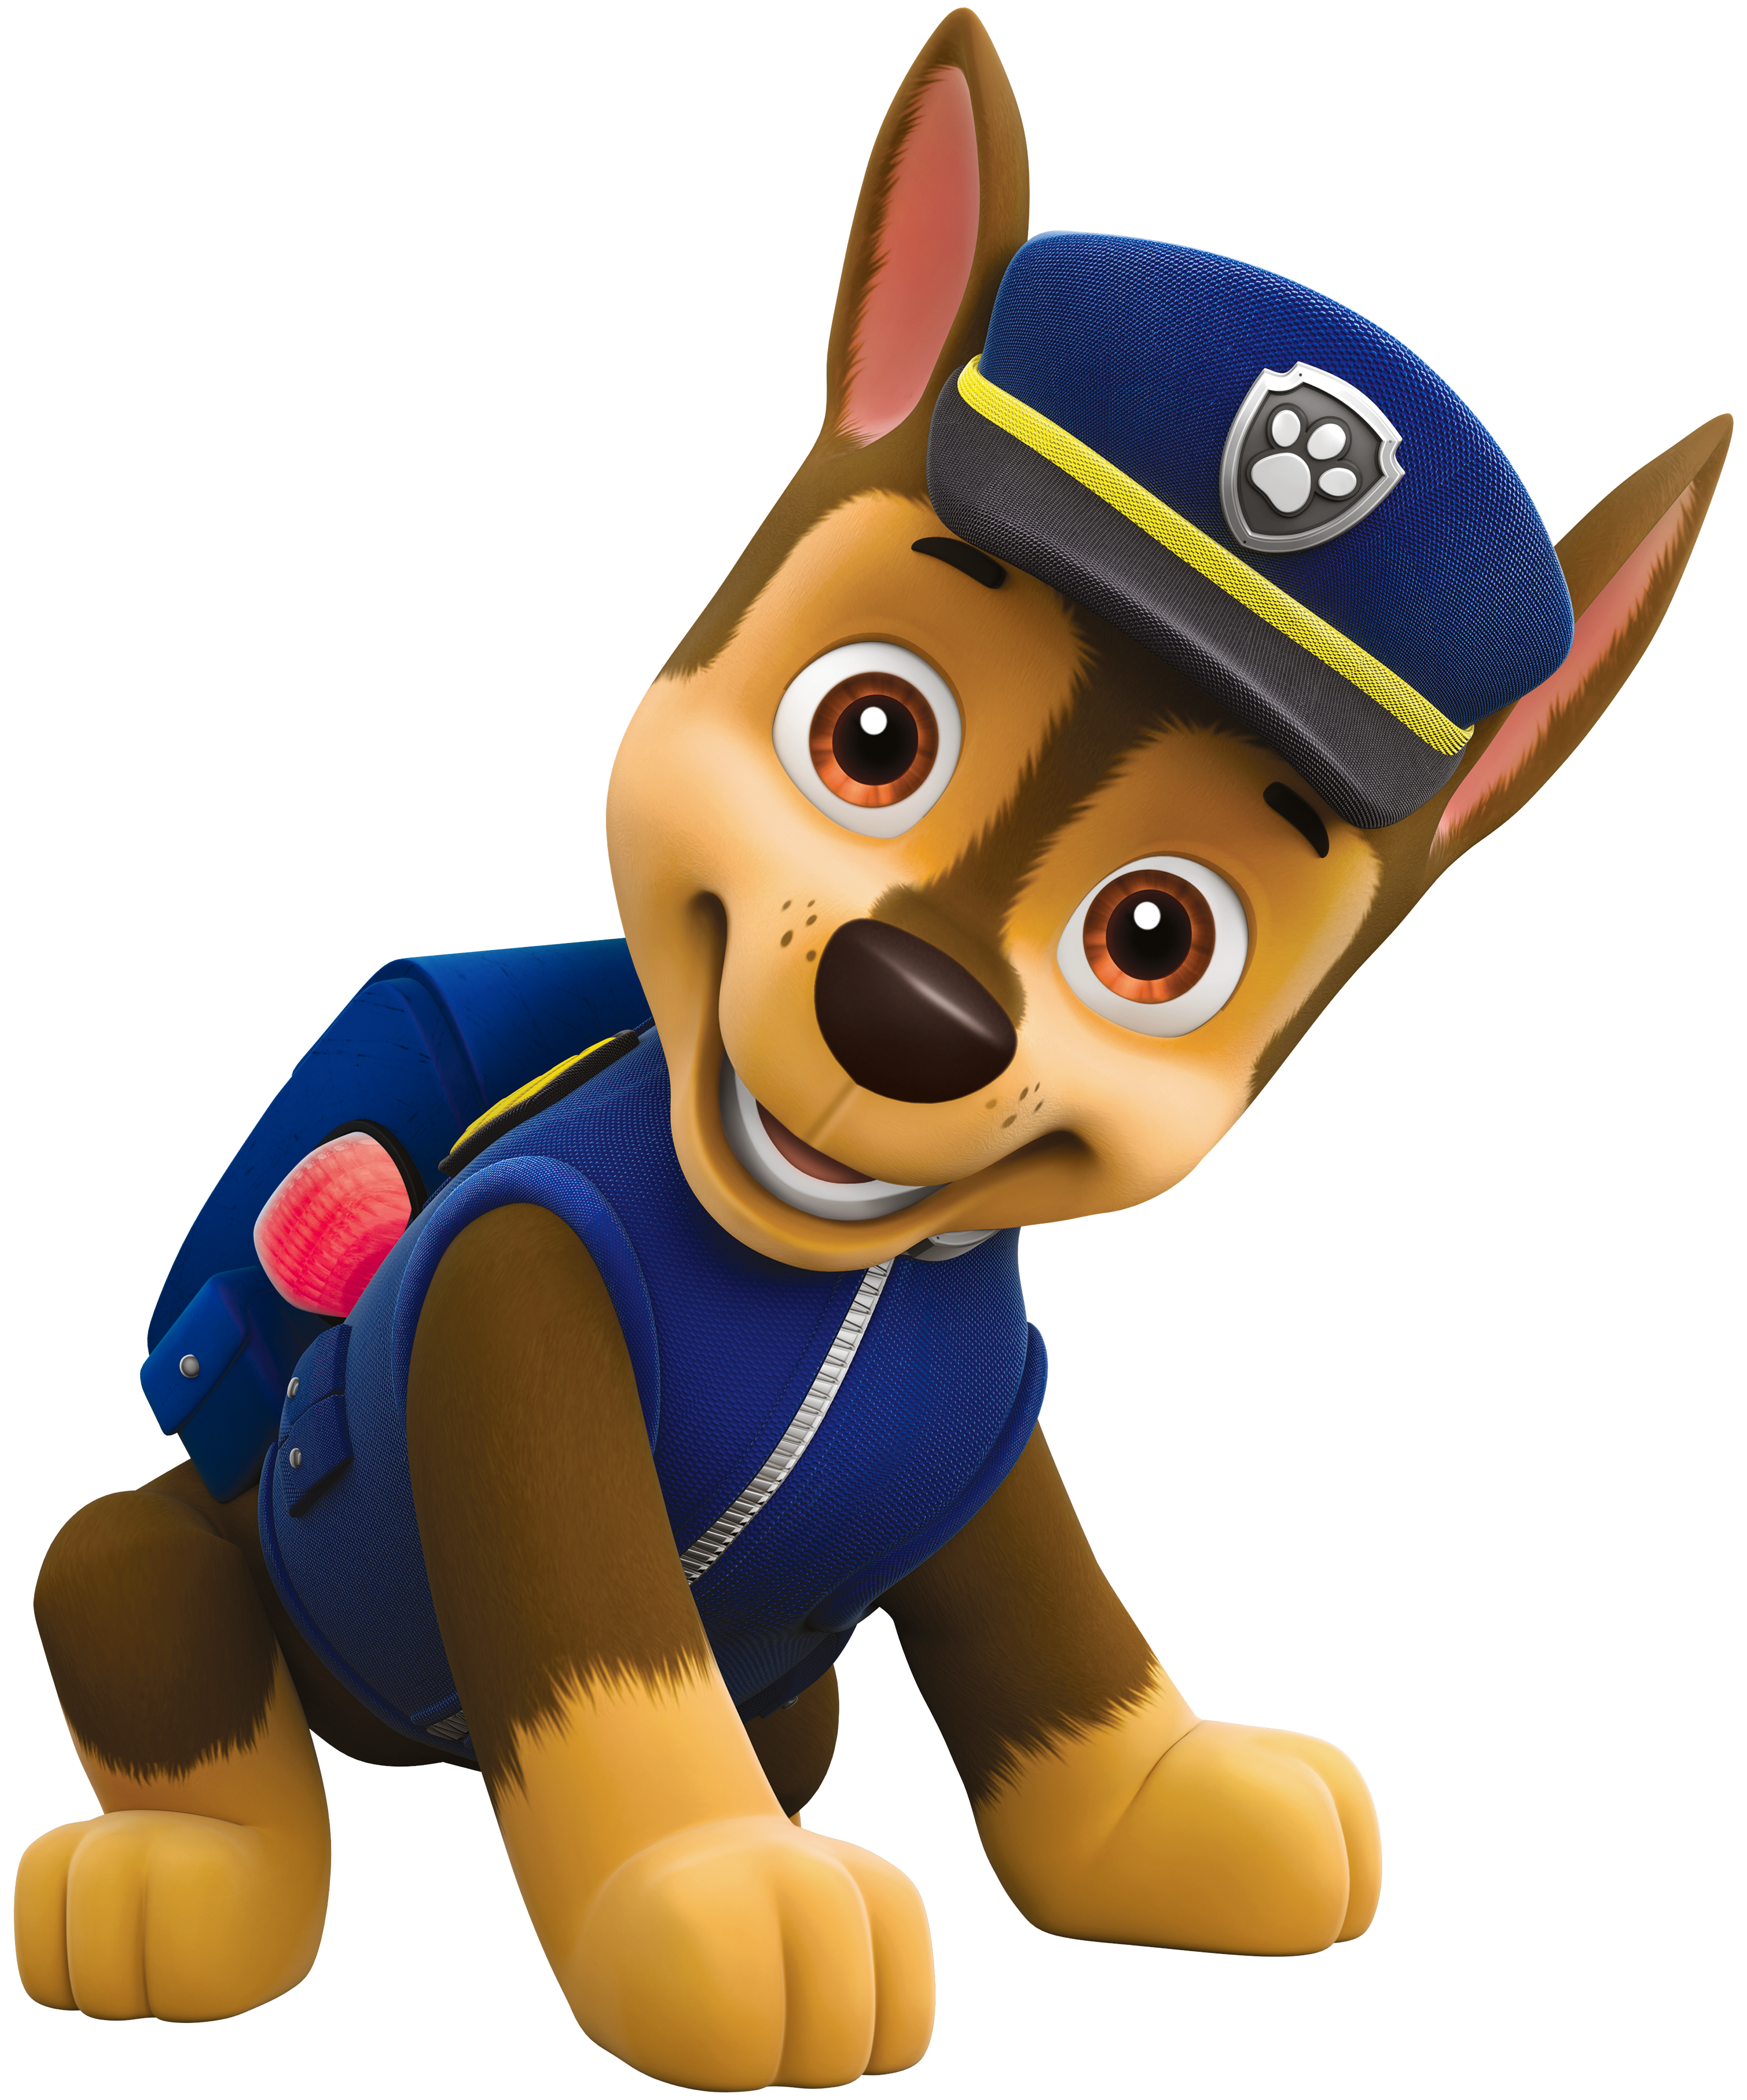 Paw patrol chase png. Cartoon image gallery yopriceville